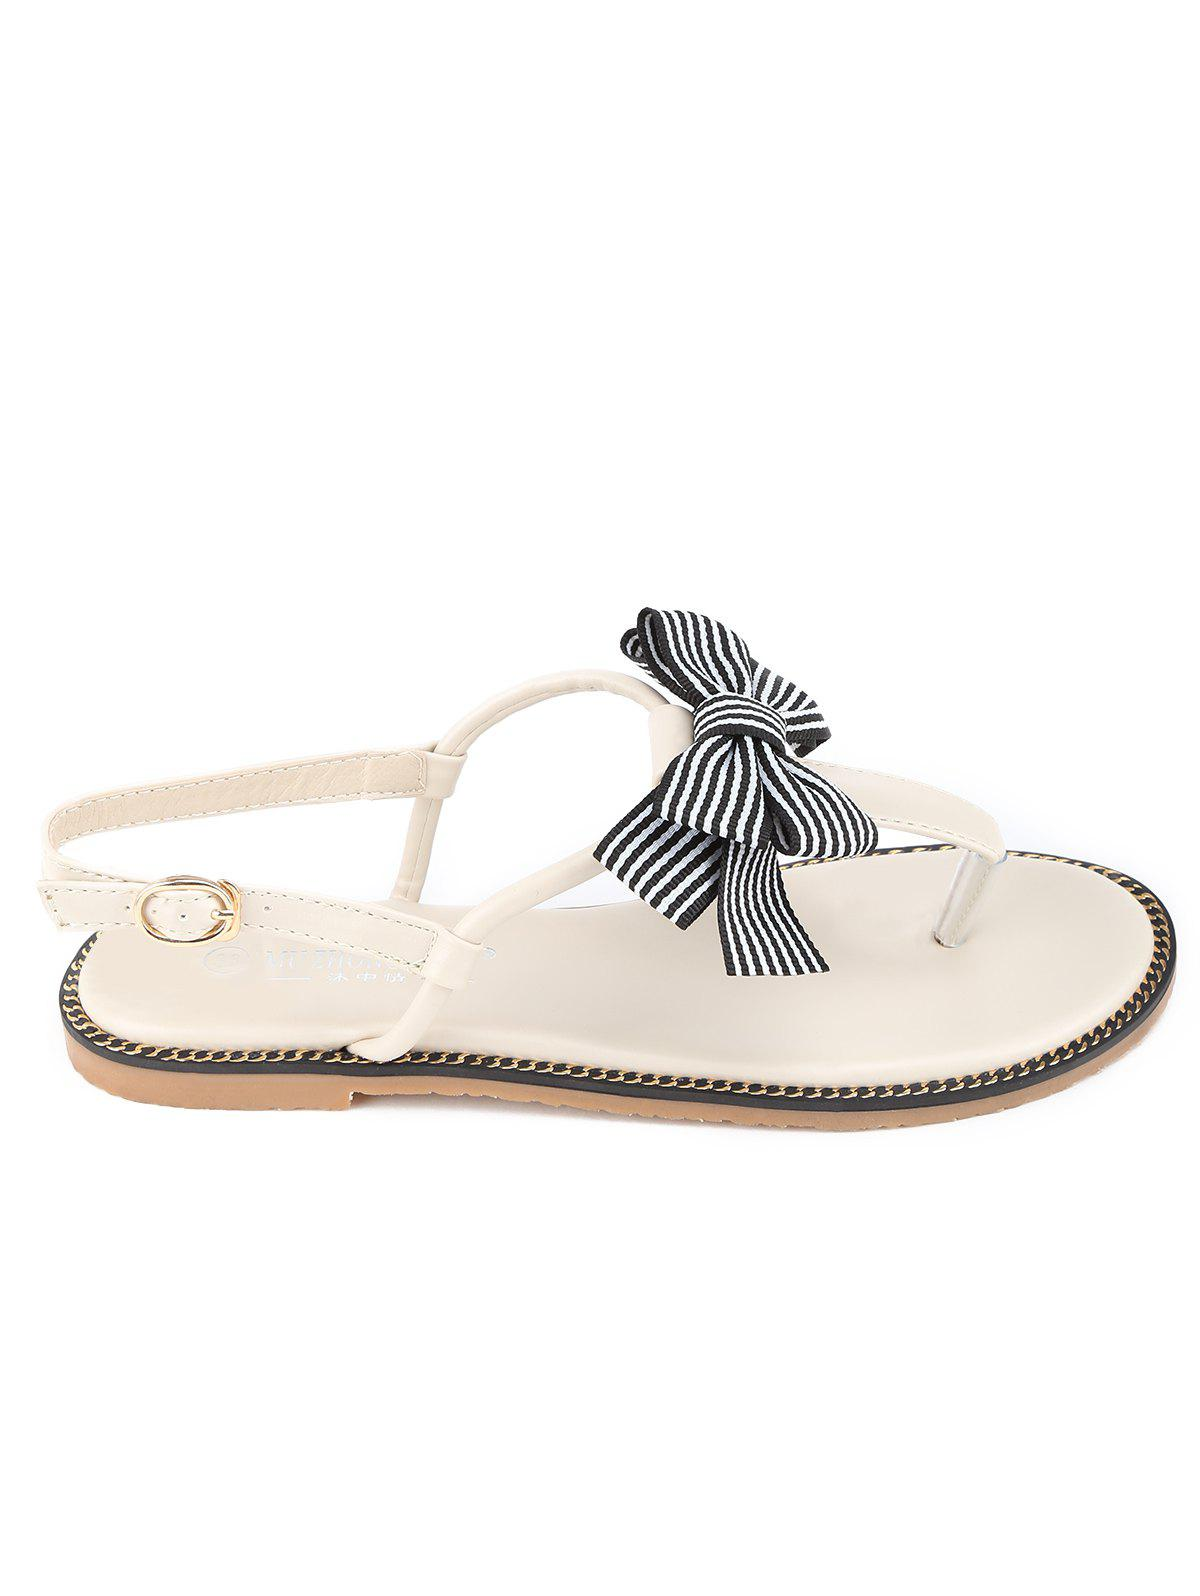 Fashion T Strap Bowknot PU Leather Flat Heel Sandals